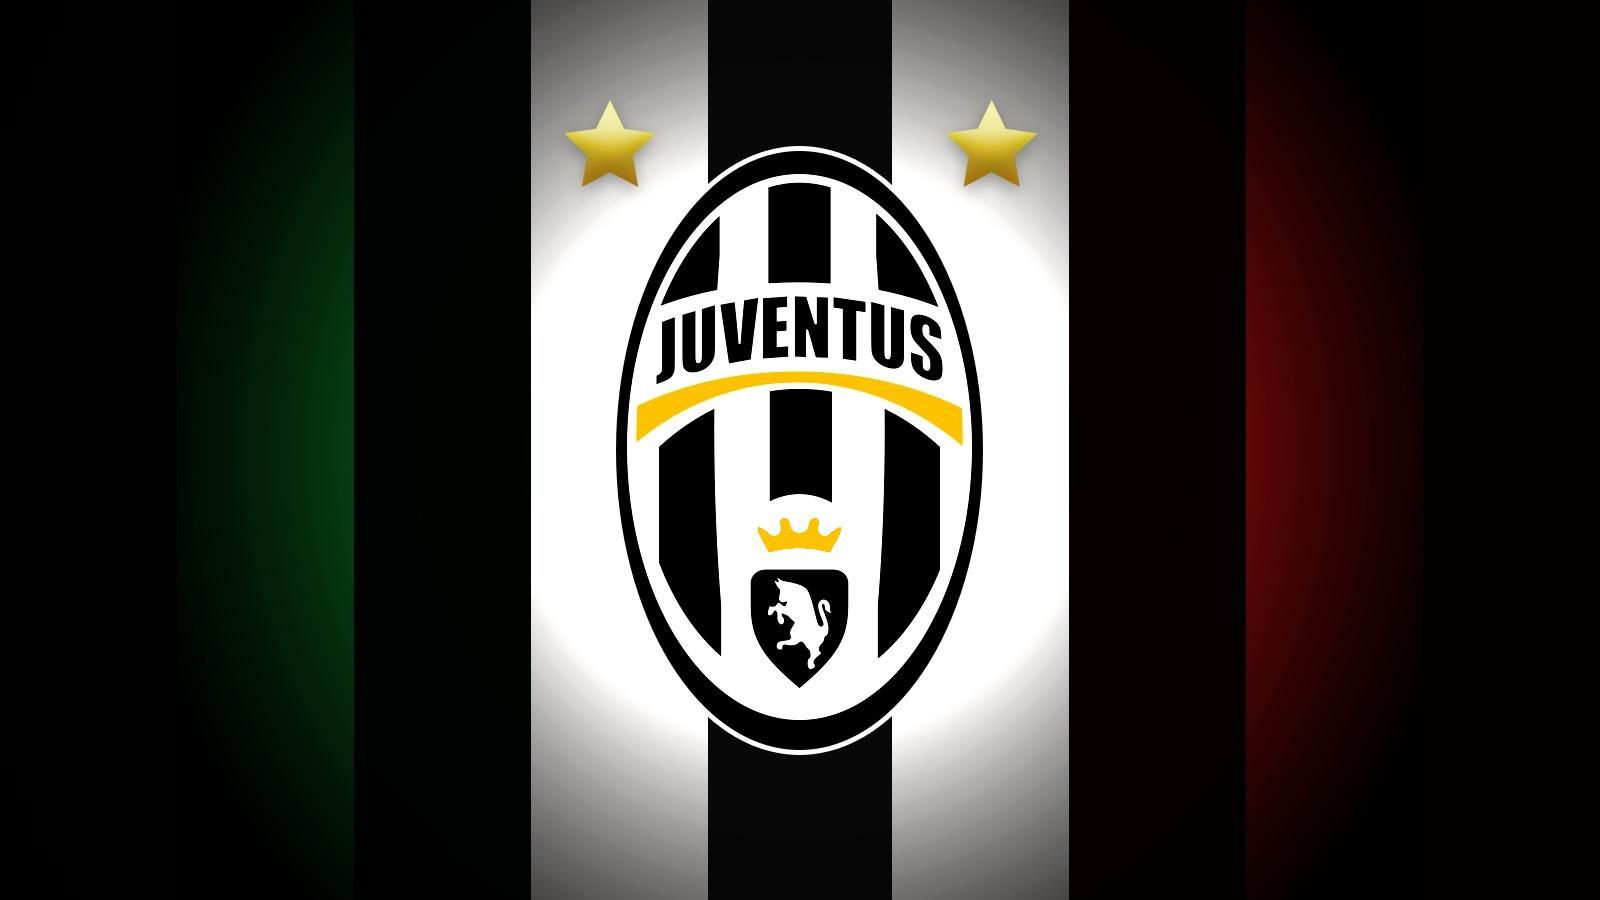 3 Juventus FC HD Wallpapers